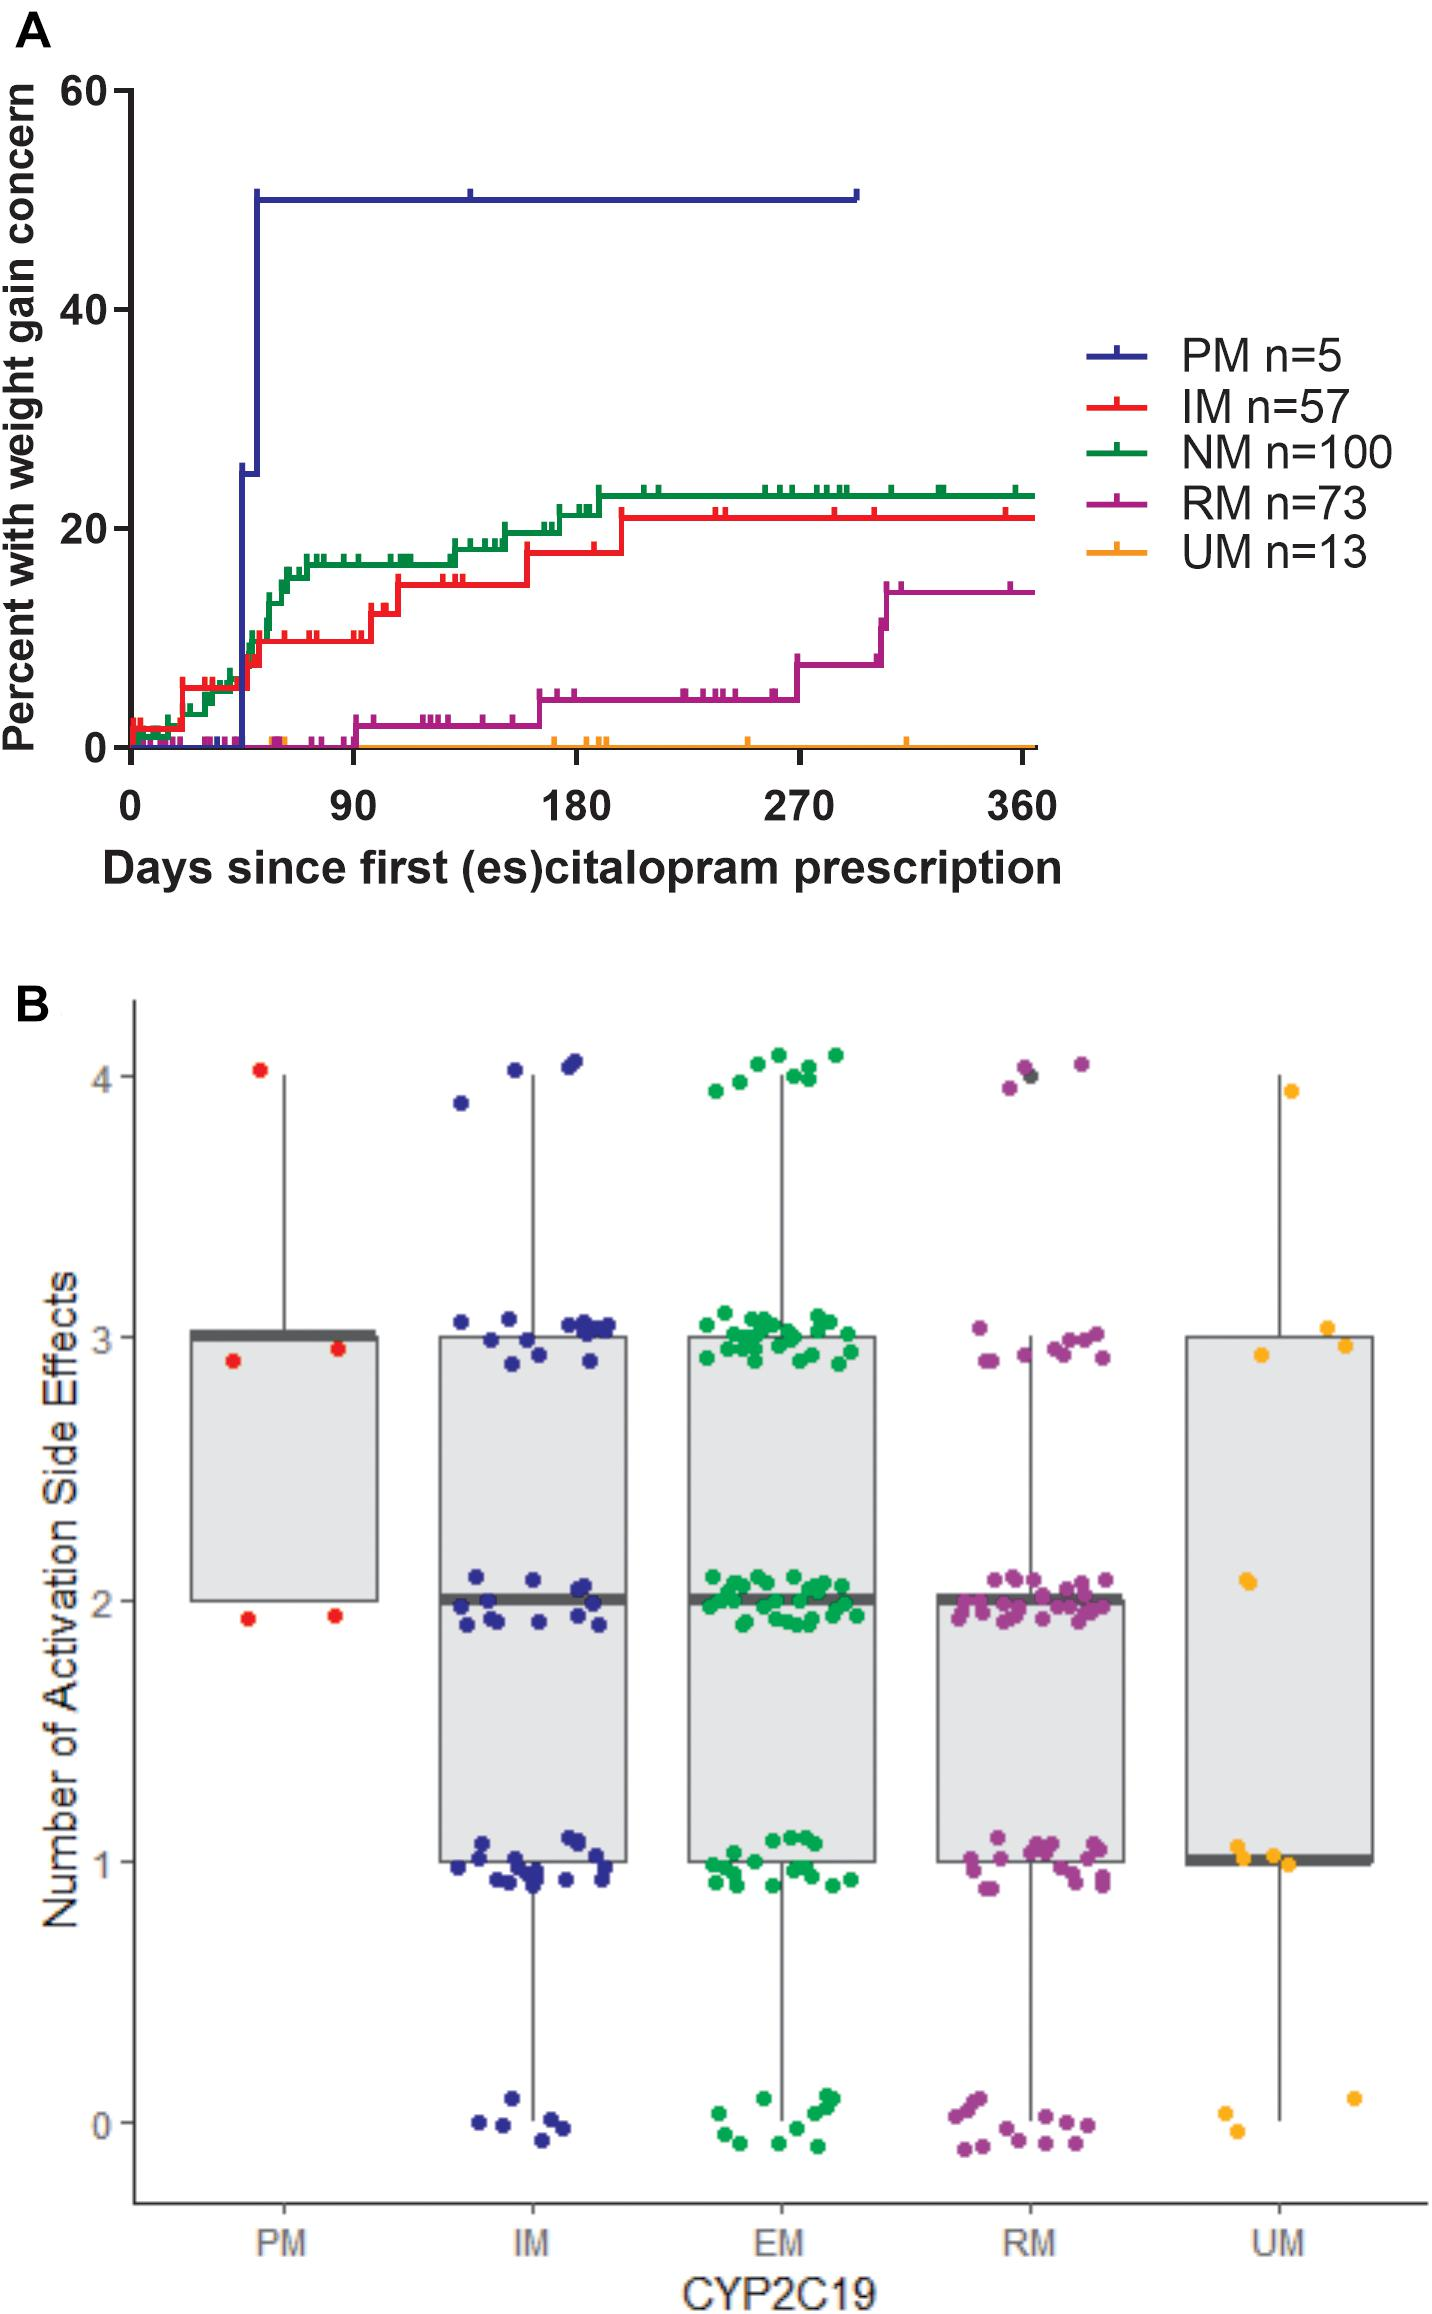 Frontiers | Influence of CYP2C19 Metabolizer Status on